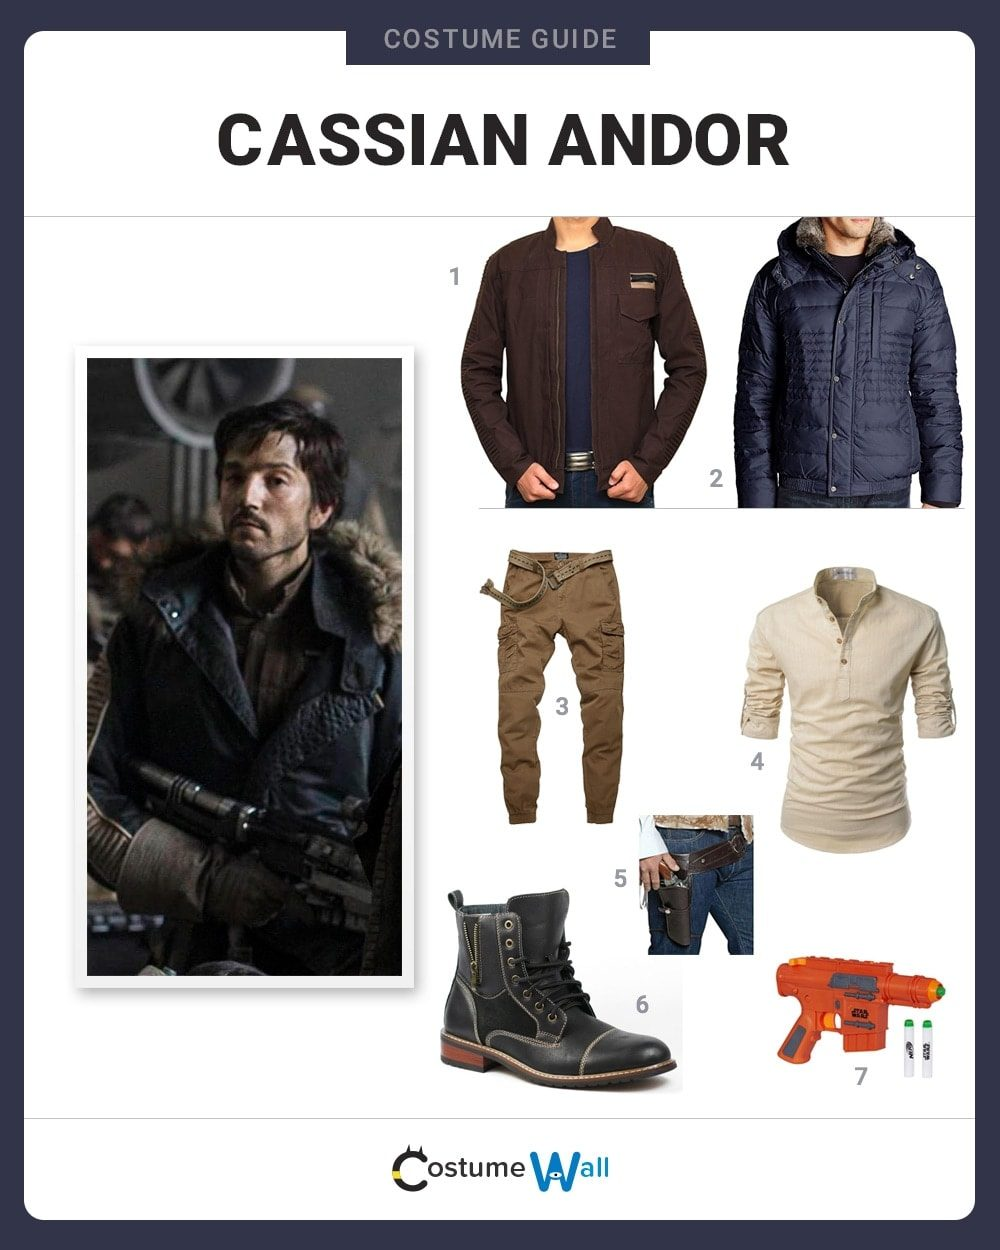 Cassian Andor Costume Guide